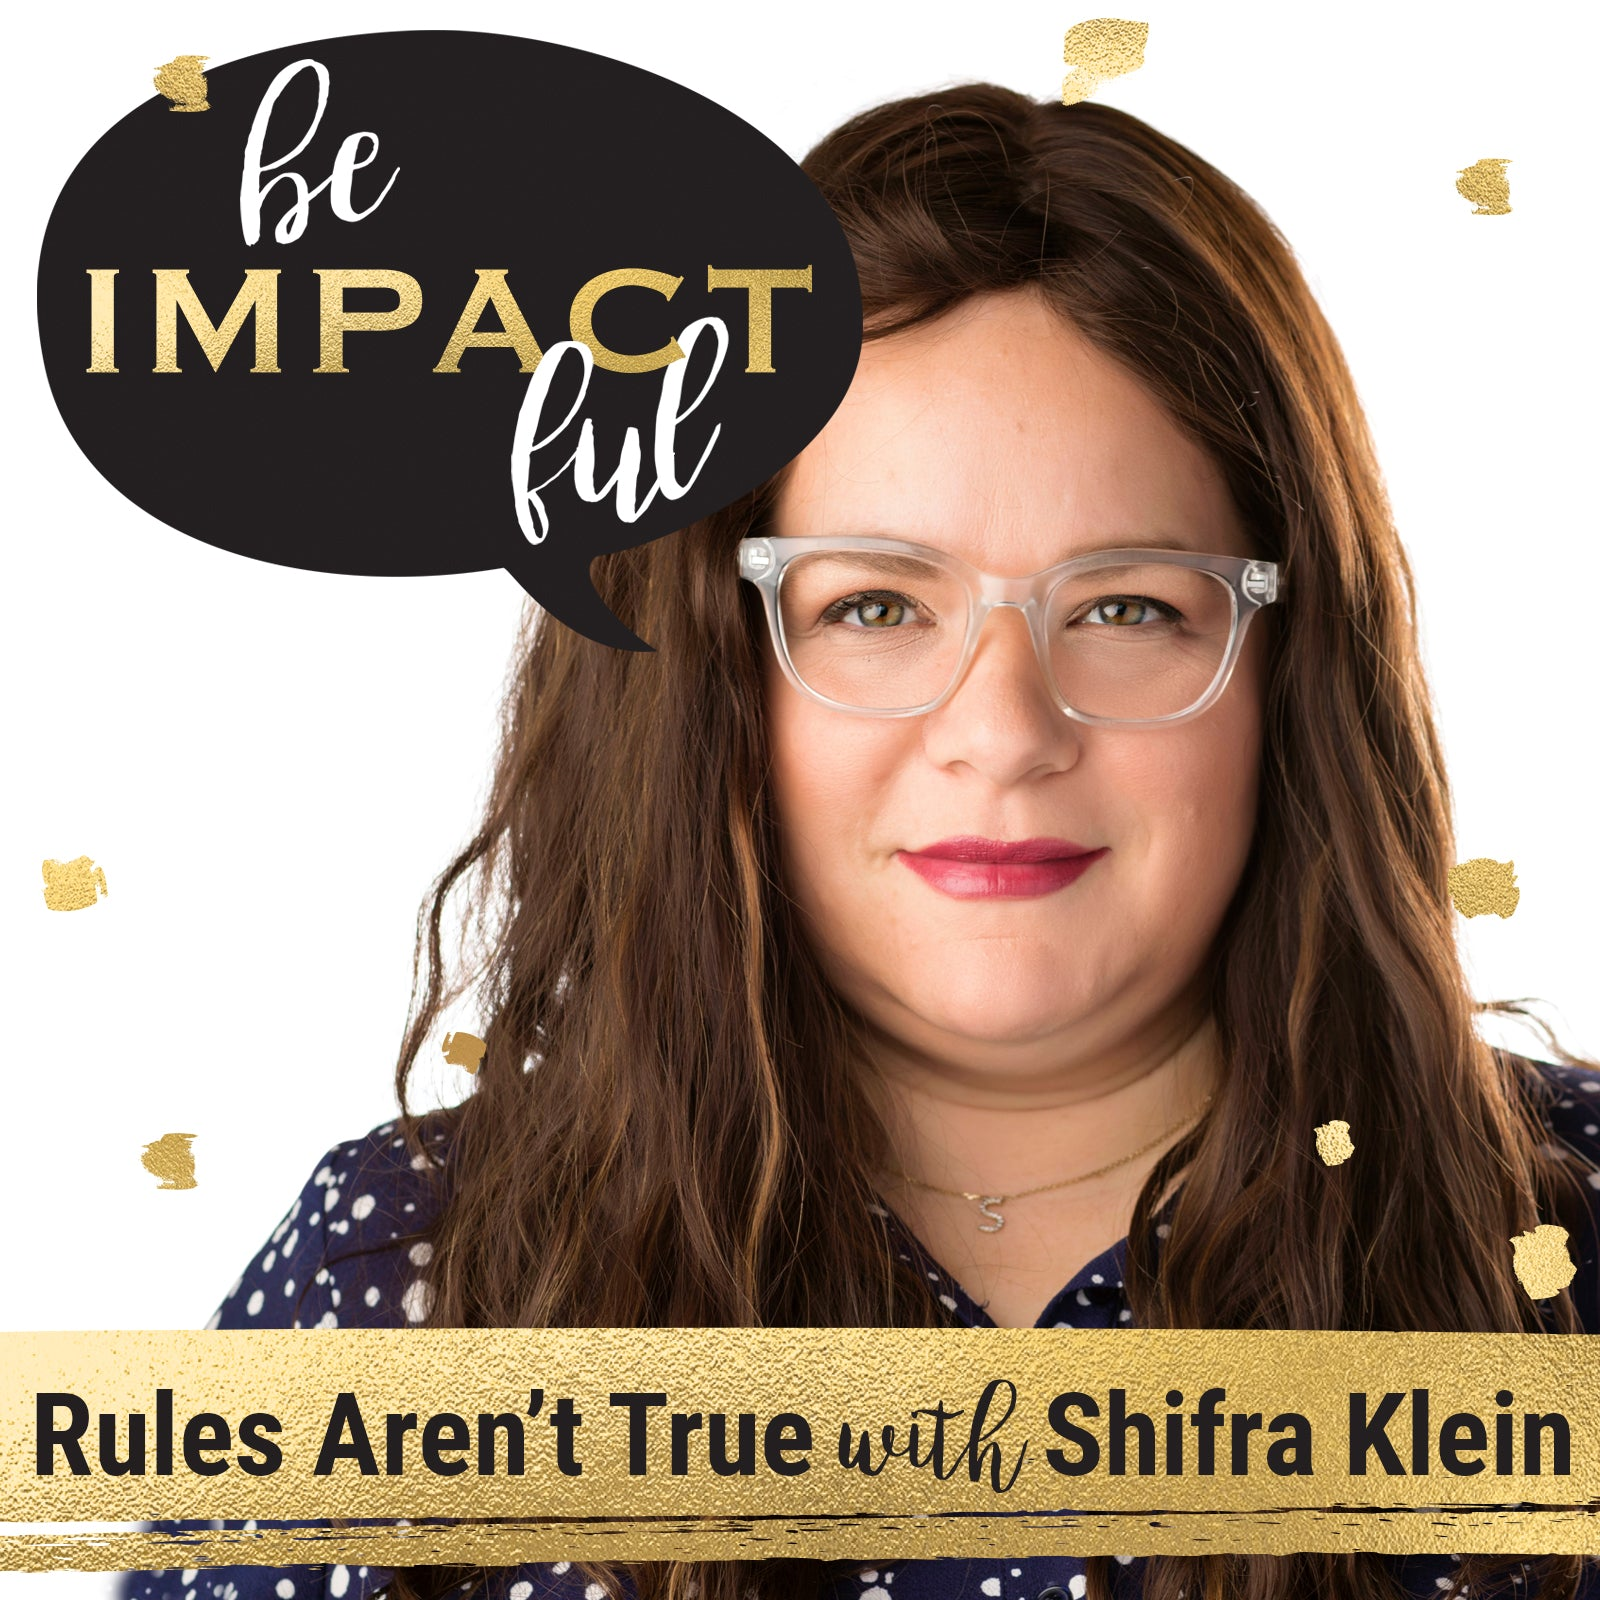 Rules Aren't True With Shifra Klein